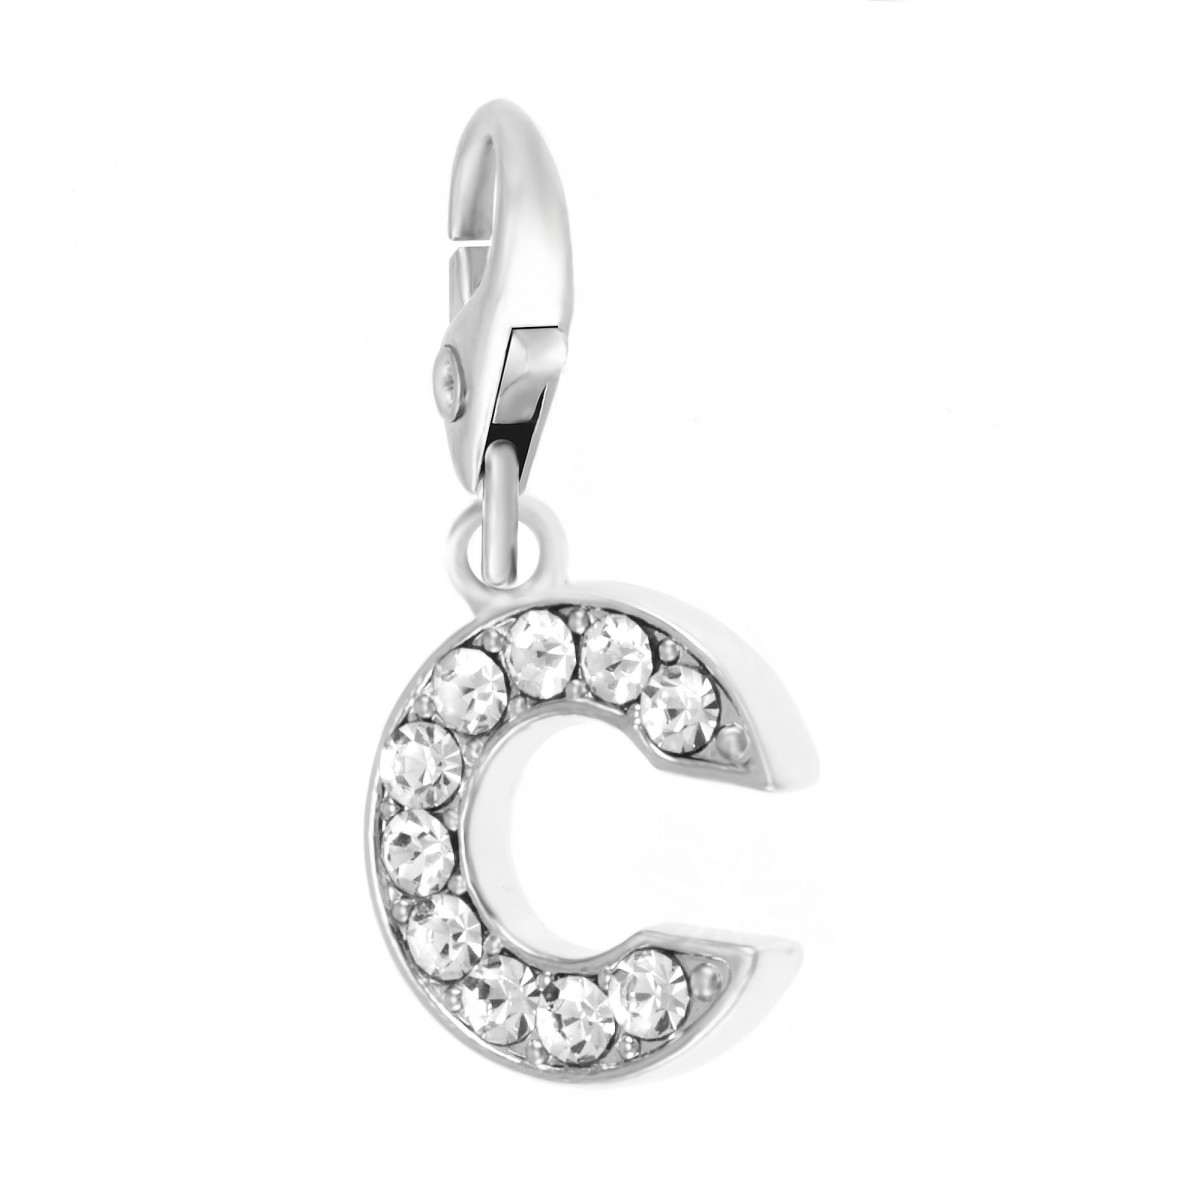 Charm Lettre C So Charm made with Crystal from Swarovski